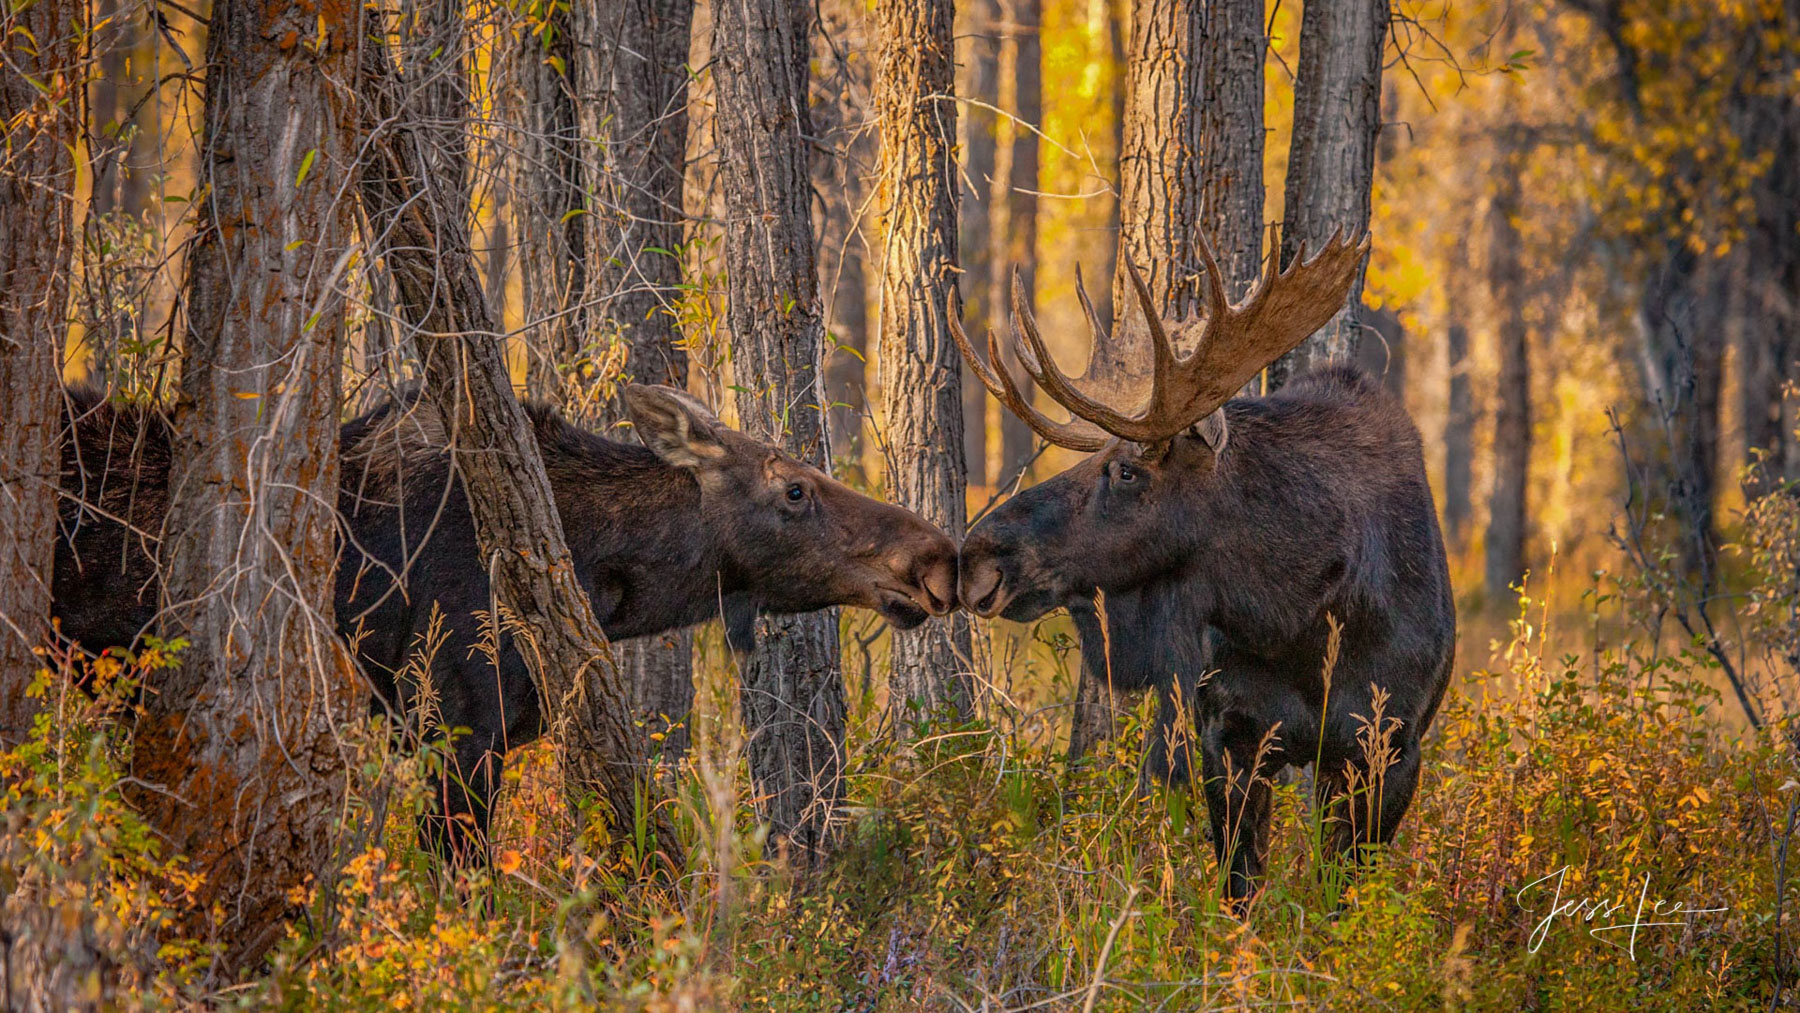 Photo print of moose kissing, Wyoming, National Parks, Grand Tetons, wilderness, autumn colors, fall, animals, wildlife photography, Large format, quality, museum, fine art, print, jess lee, artist ph, photo